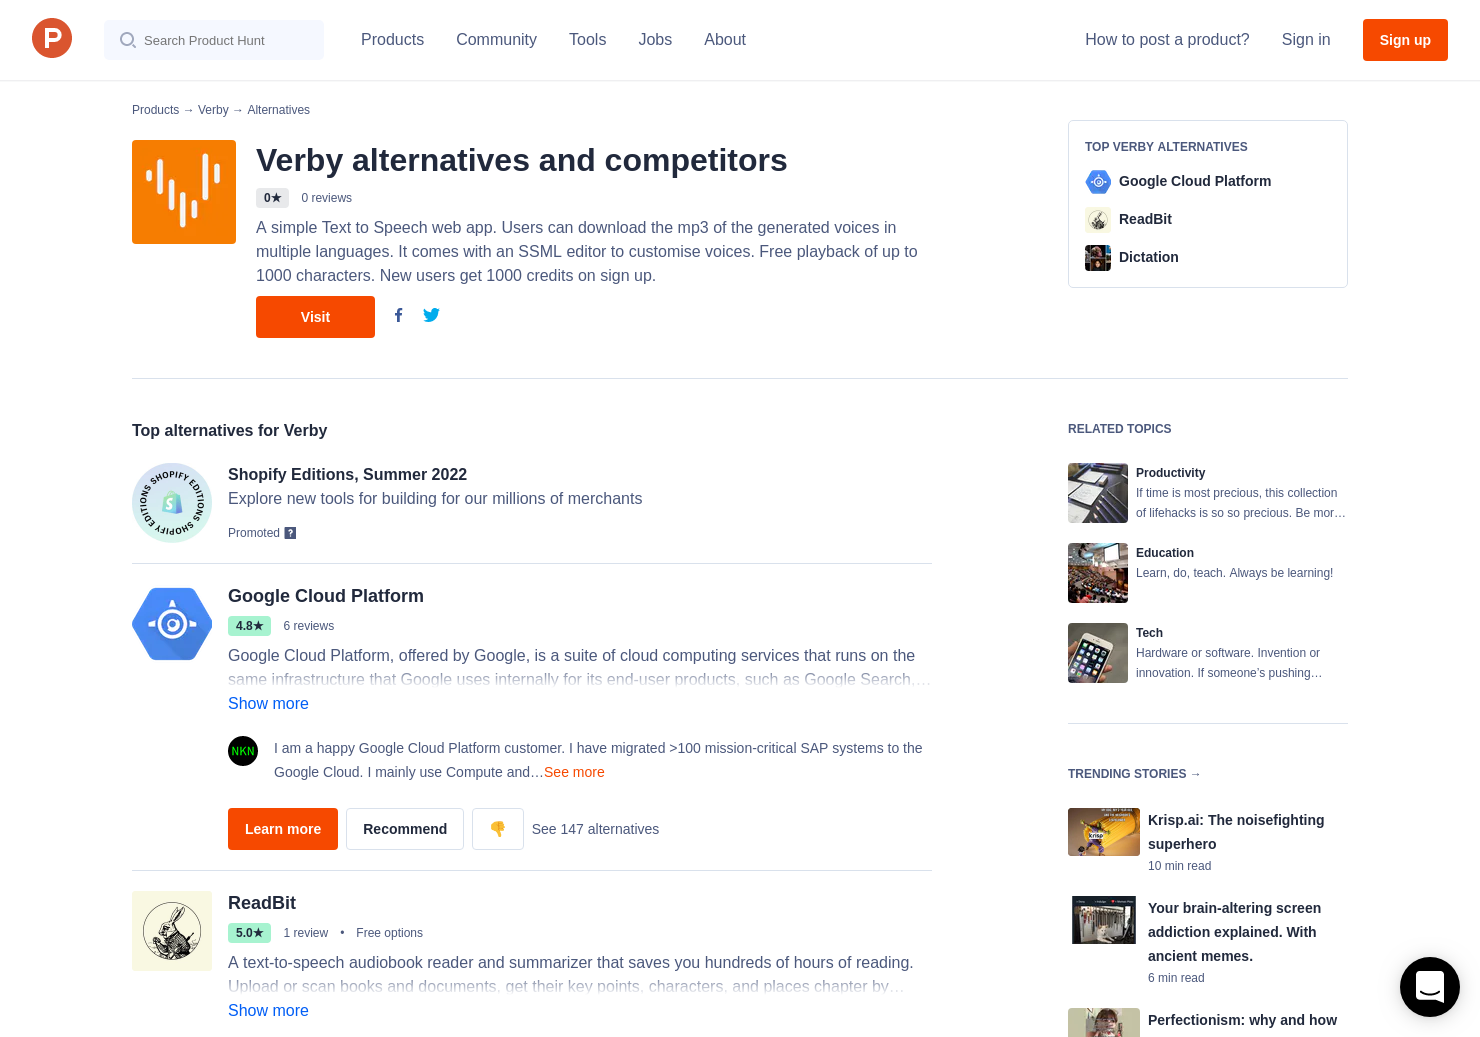 6 Alternatives to Verby | Product Hunt